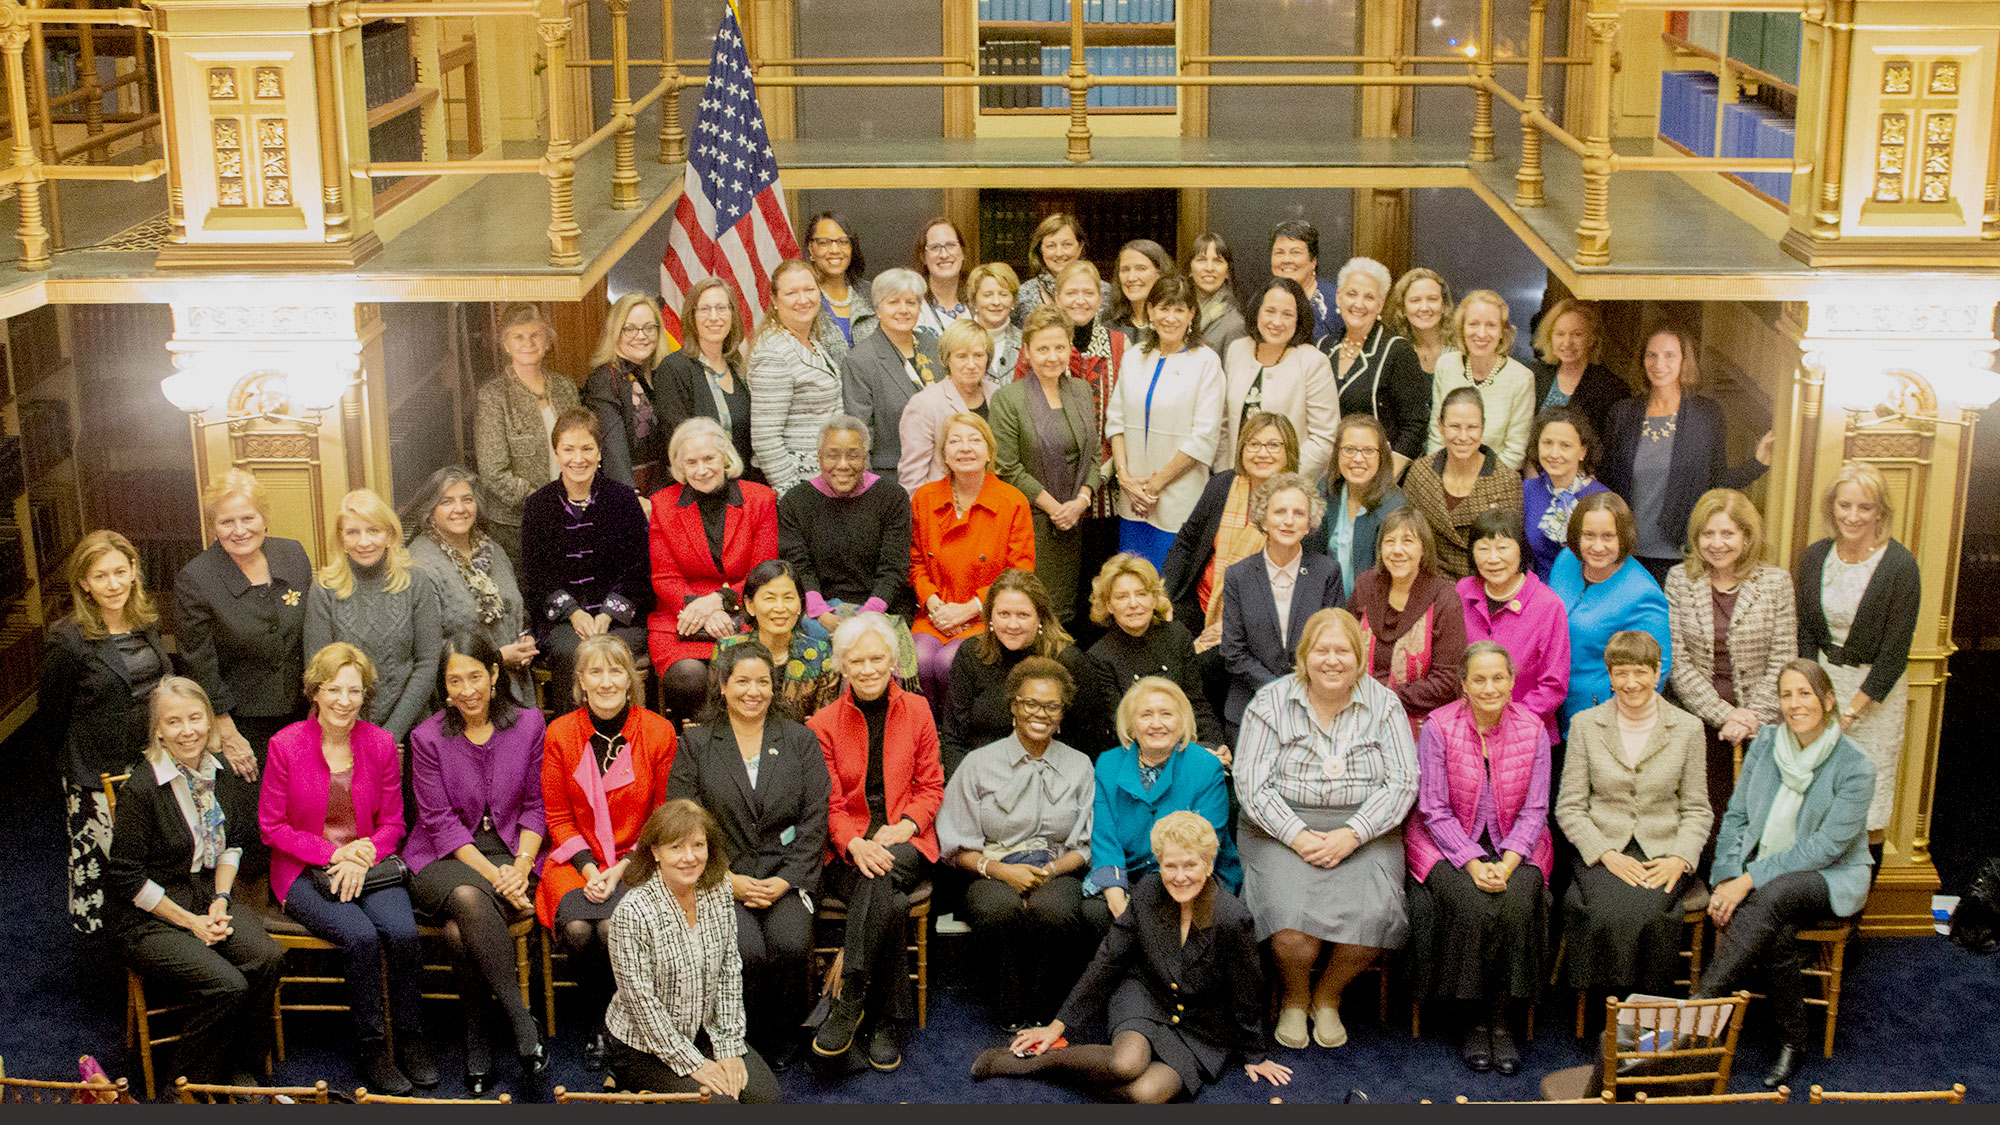 A group of about 60 women sit and stand for a photo together in Riggs Library.